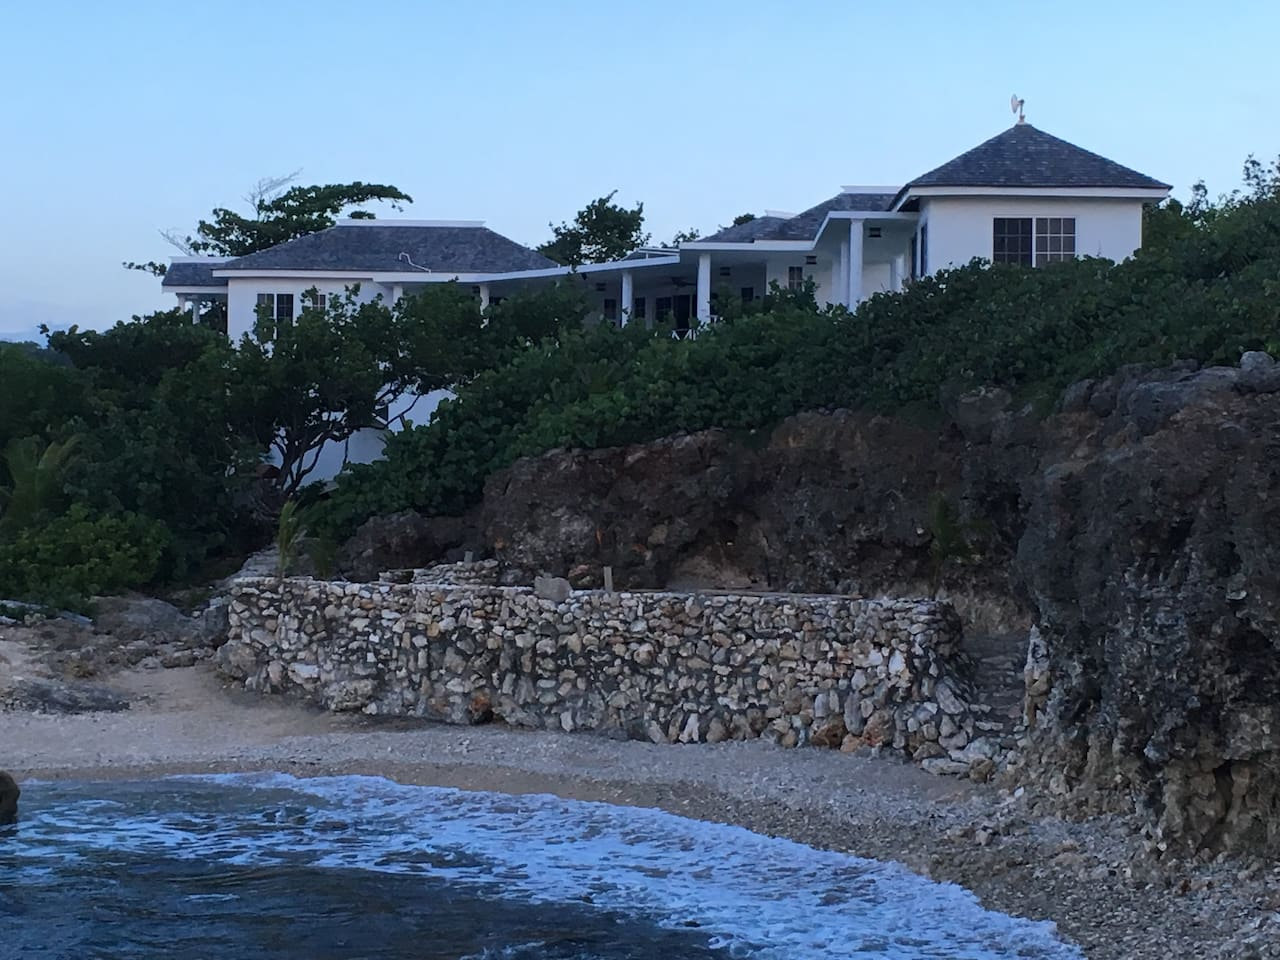 newly constructed traditional British colonial style home with detached cottage all on a cliff overlooking the private beach cove below